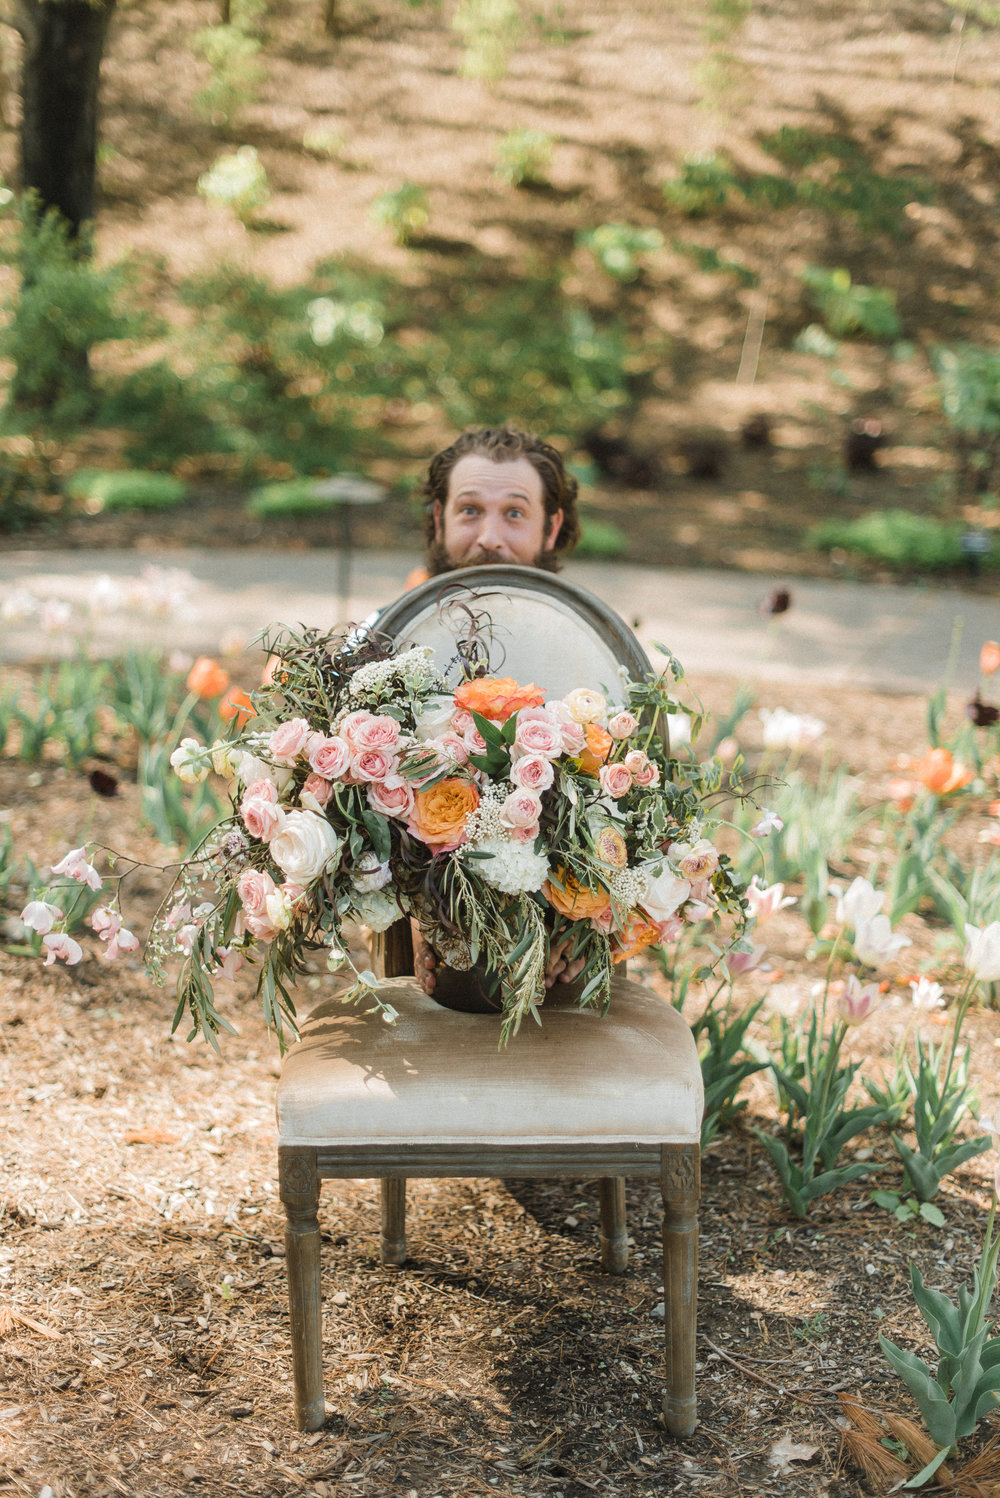 Wavy Alabaster x Renoir Inspired Picnic Shoot